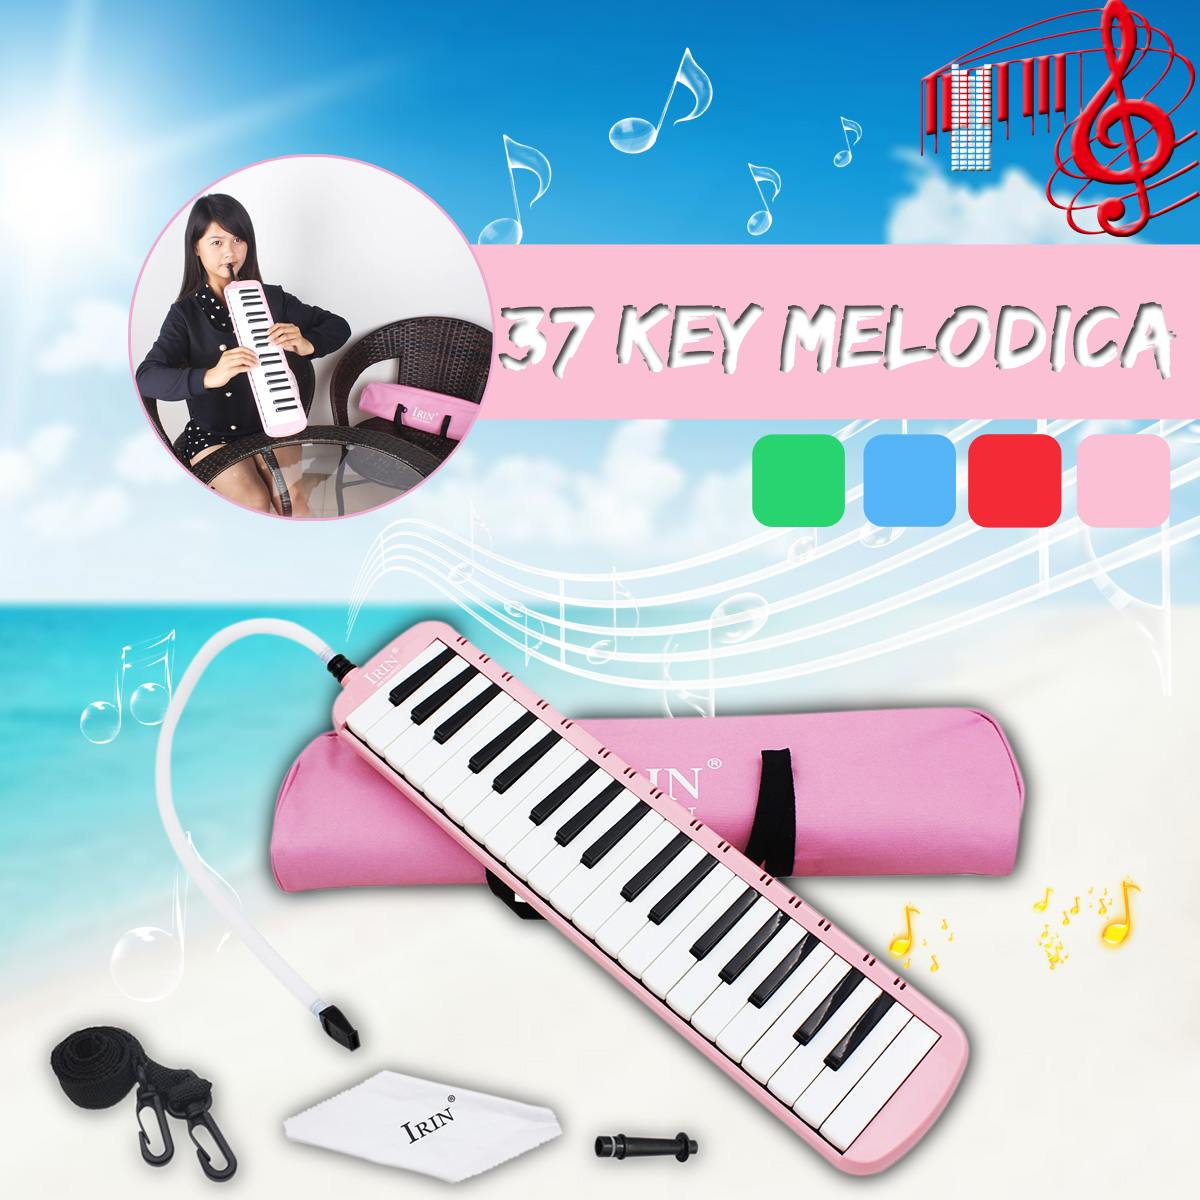 37 Keys Electronic Melodica Harmonica Keyboard With Handbag Durable Musical Instruments Performance Beginner Practice